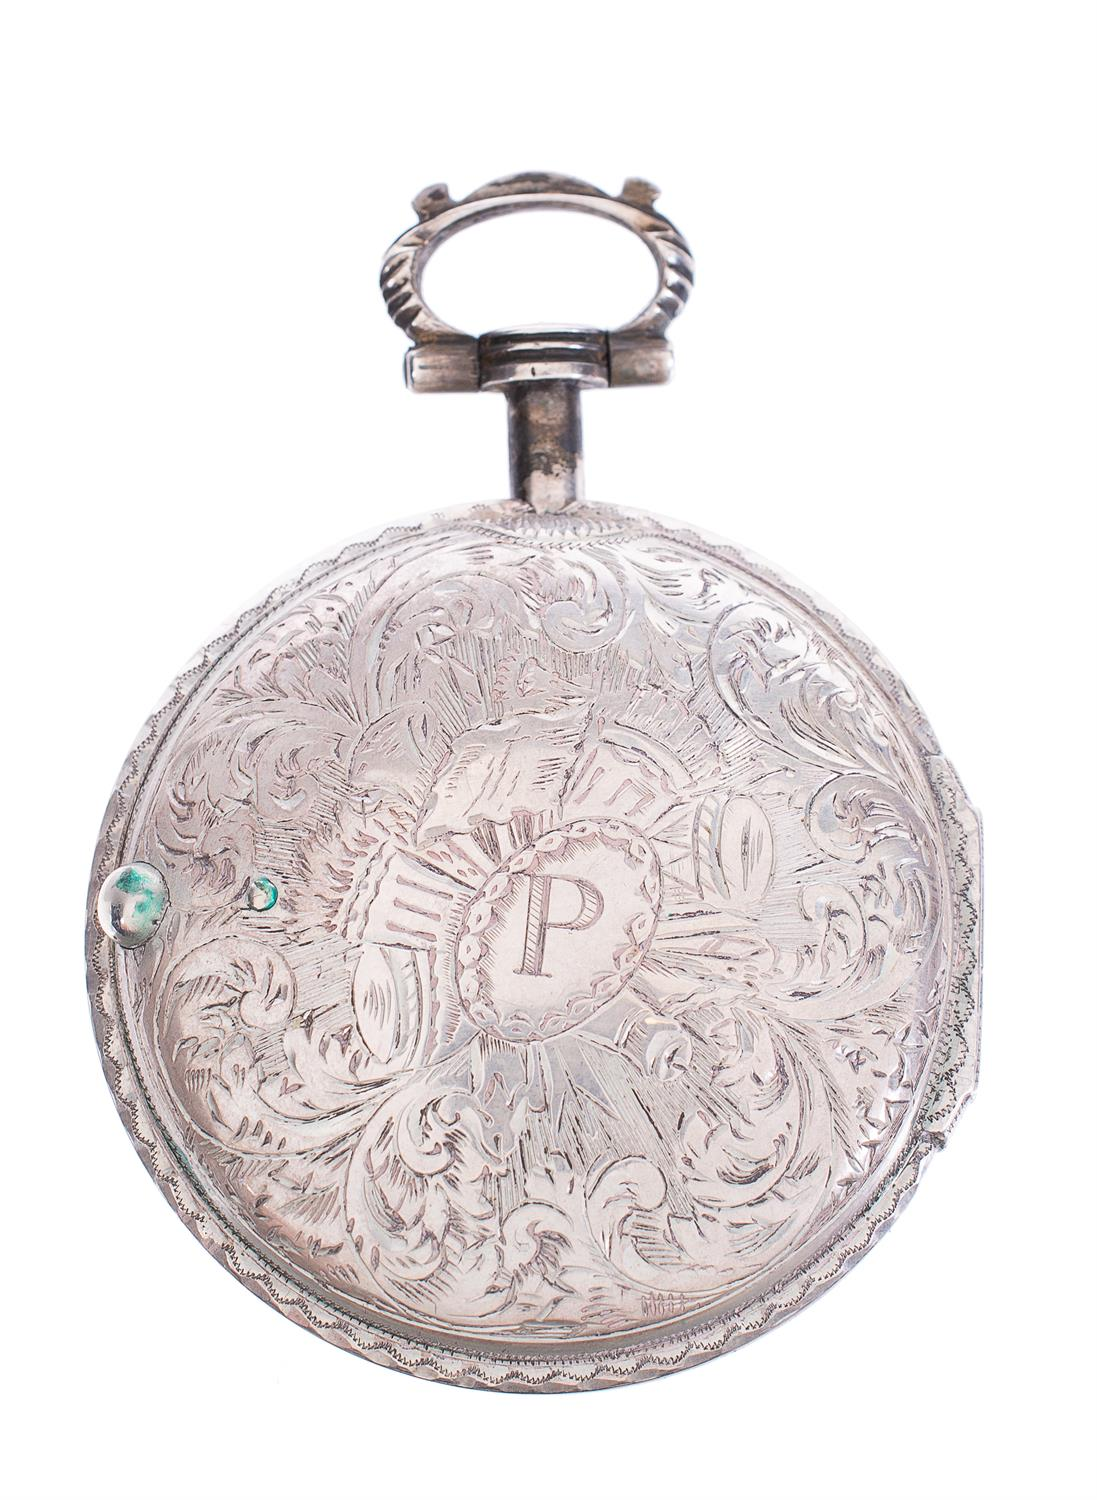 Lot 53 - A silver and tortoiseshell triple-cased verge pocket watch, Edward Prior, London, circa 1875